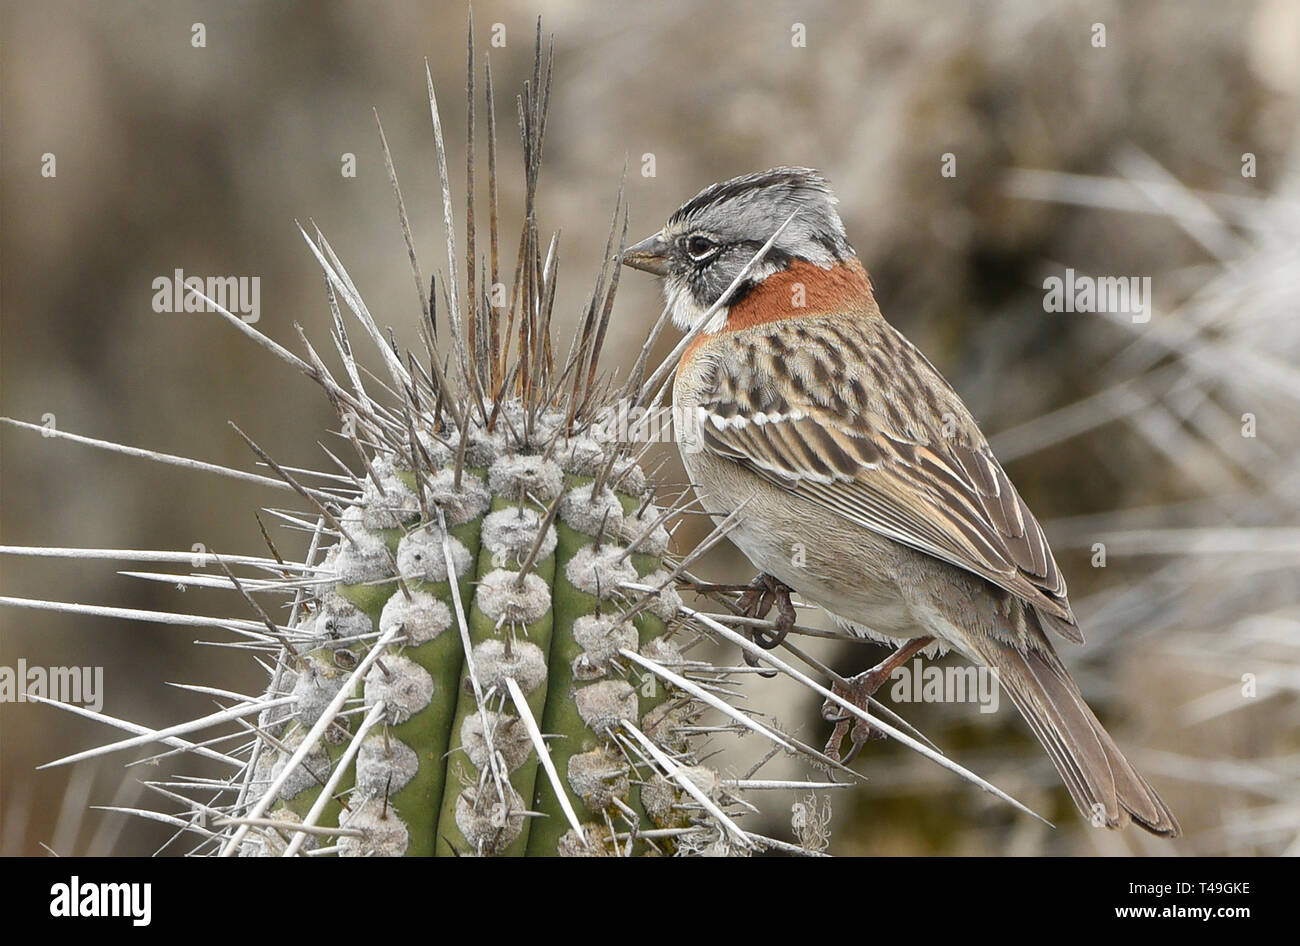 Andean sparrow (rufous-collared sparrow) on Isla Damas, Humboldt Penguin Reserve, Punta Choros, Chile - Stock Image